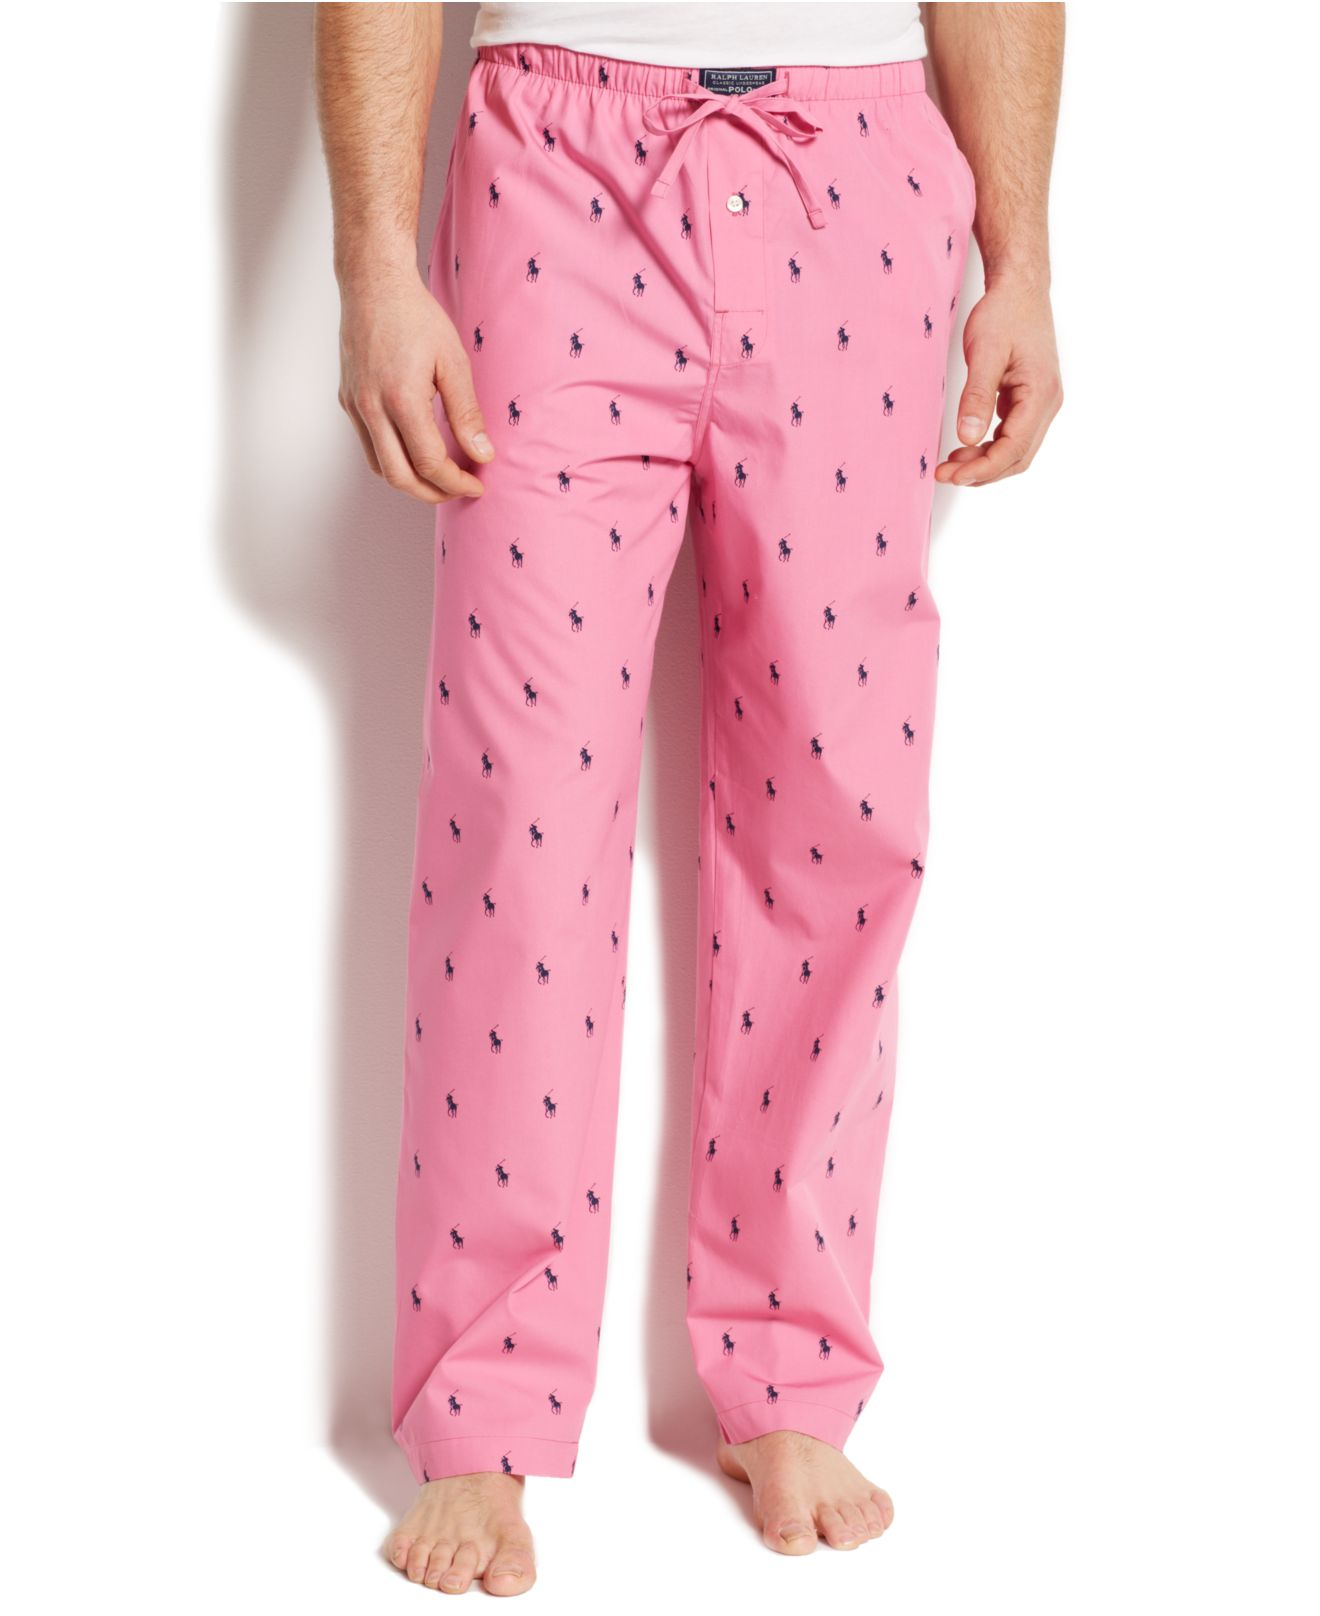 d379b029a9e Lyst - Polo Ralph Lauren Allover Pony Pajama Pants in Pink for Men